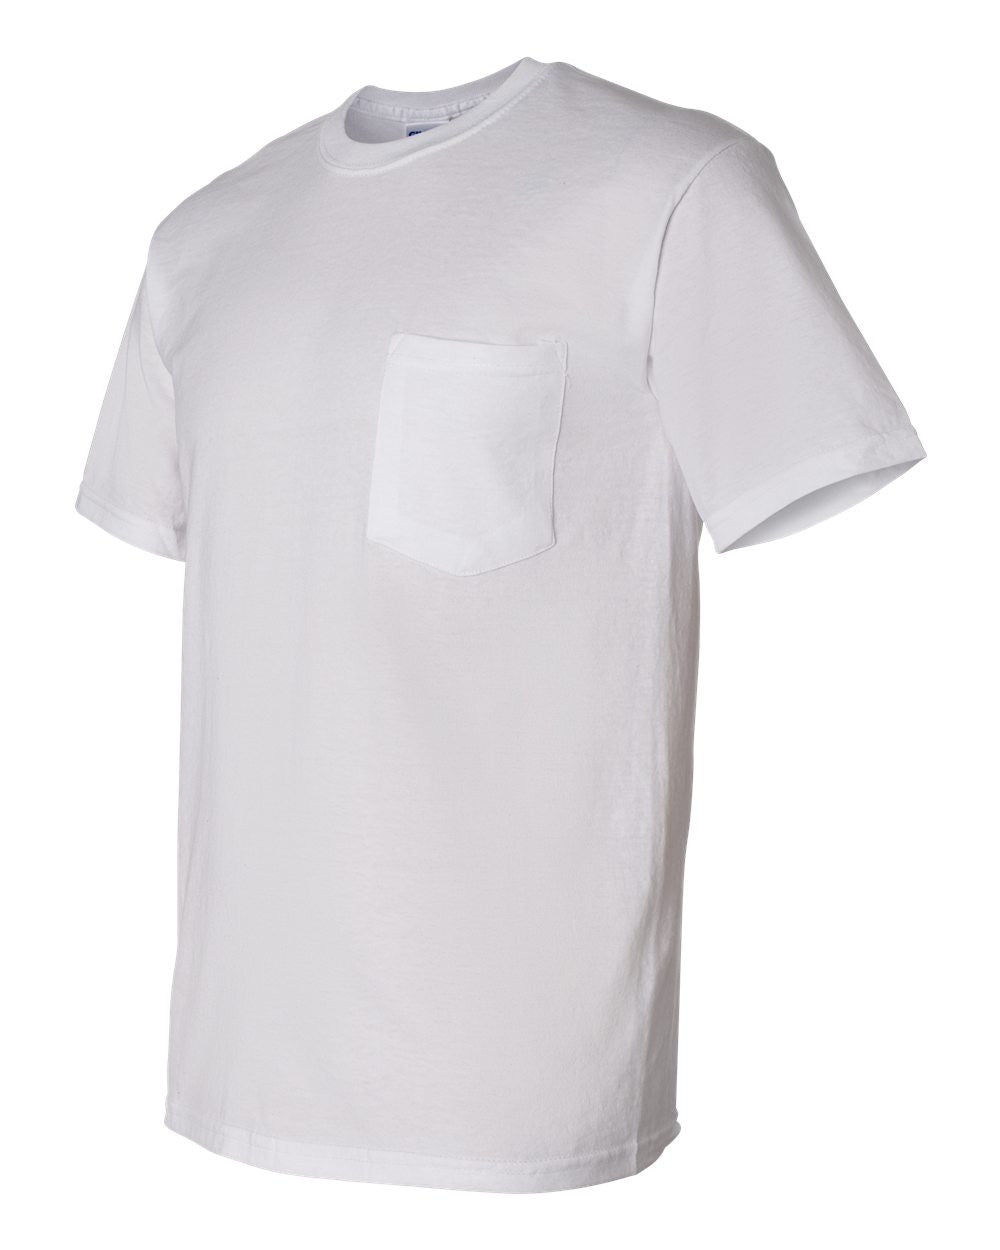 8300- DryBlend 50/50 T-Shirt with a Pocket